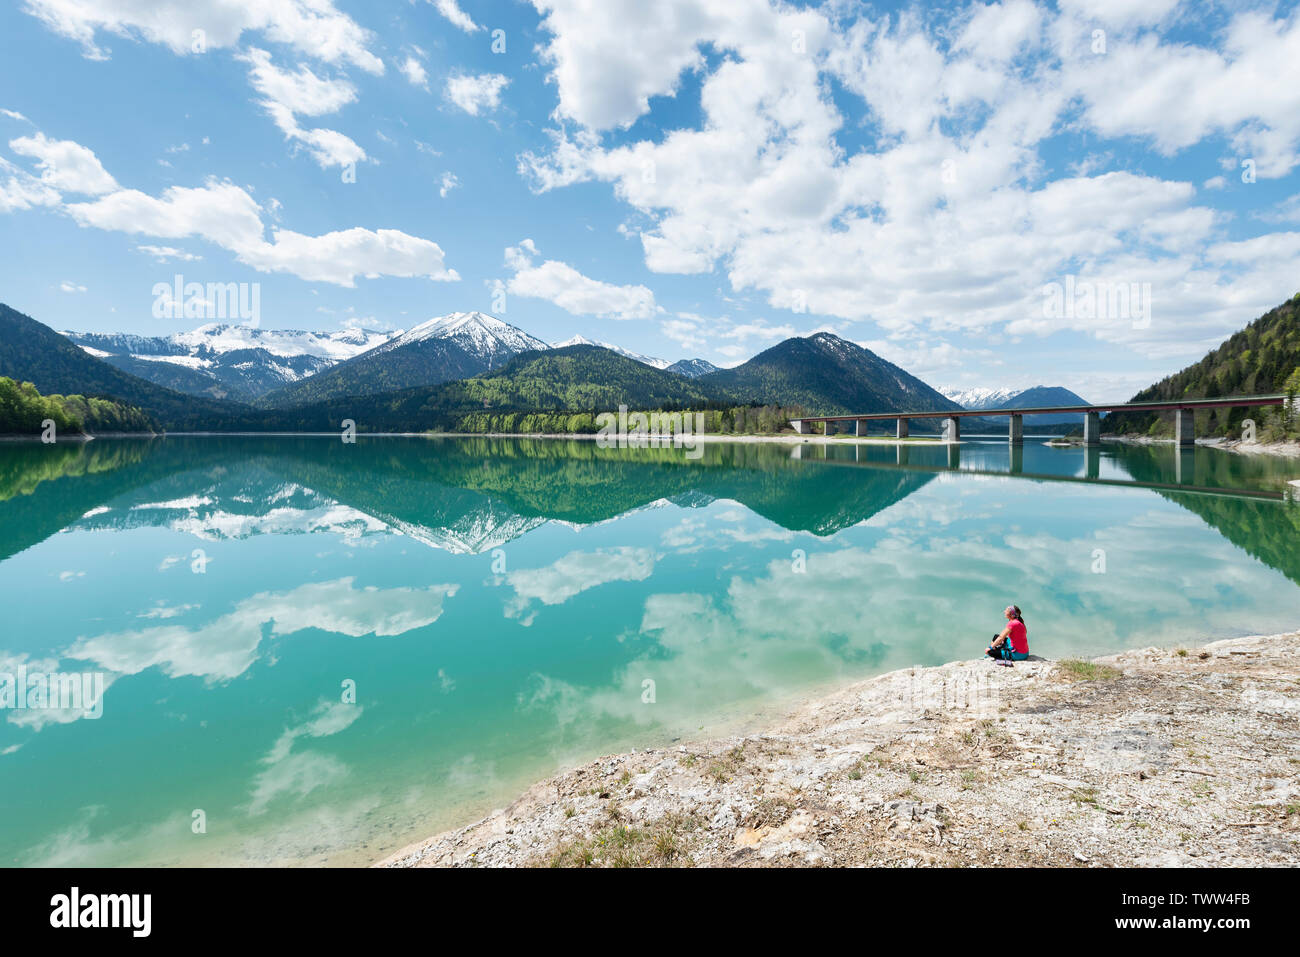 Woman sitting on the shore of the Sylvenstein reservoir and looking at the Karwendel mountains reflected in the turquoise water, Bavaria, Germany - Stock Image